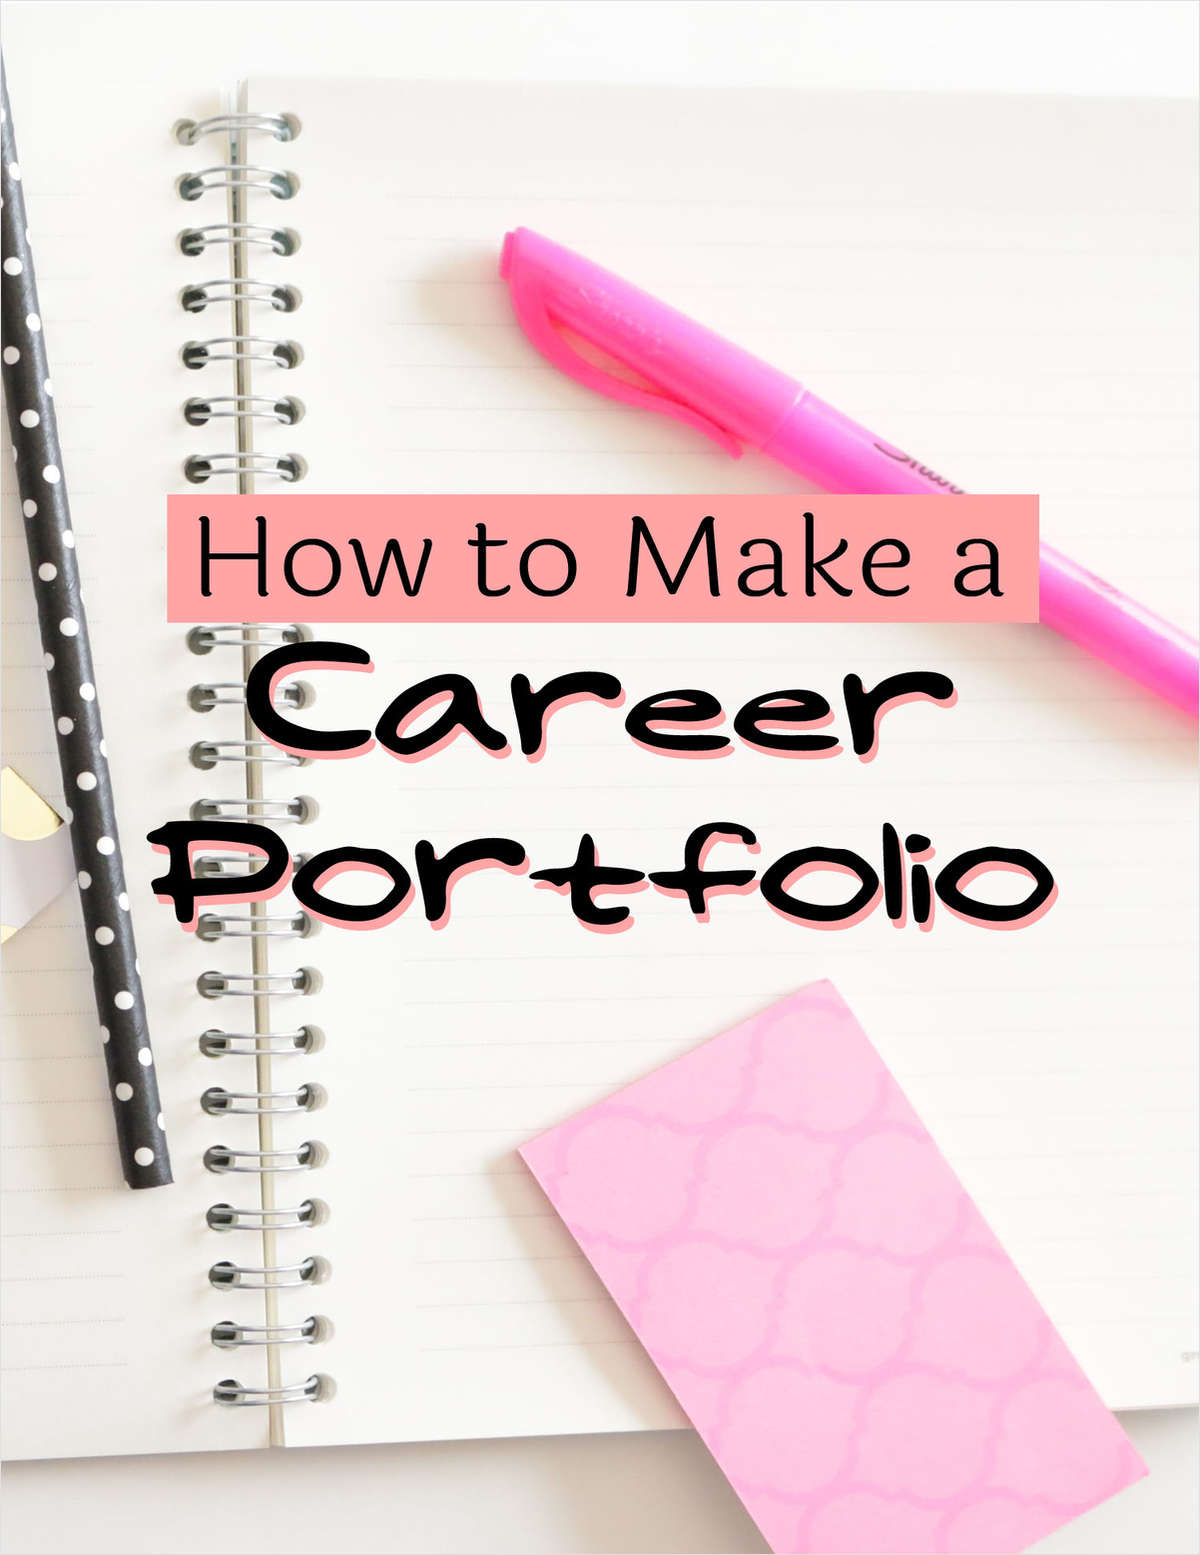 How to Make a Career Portfolio